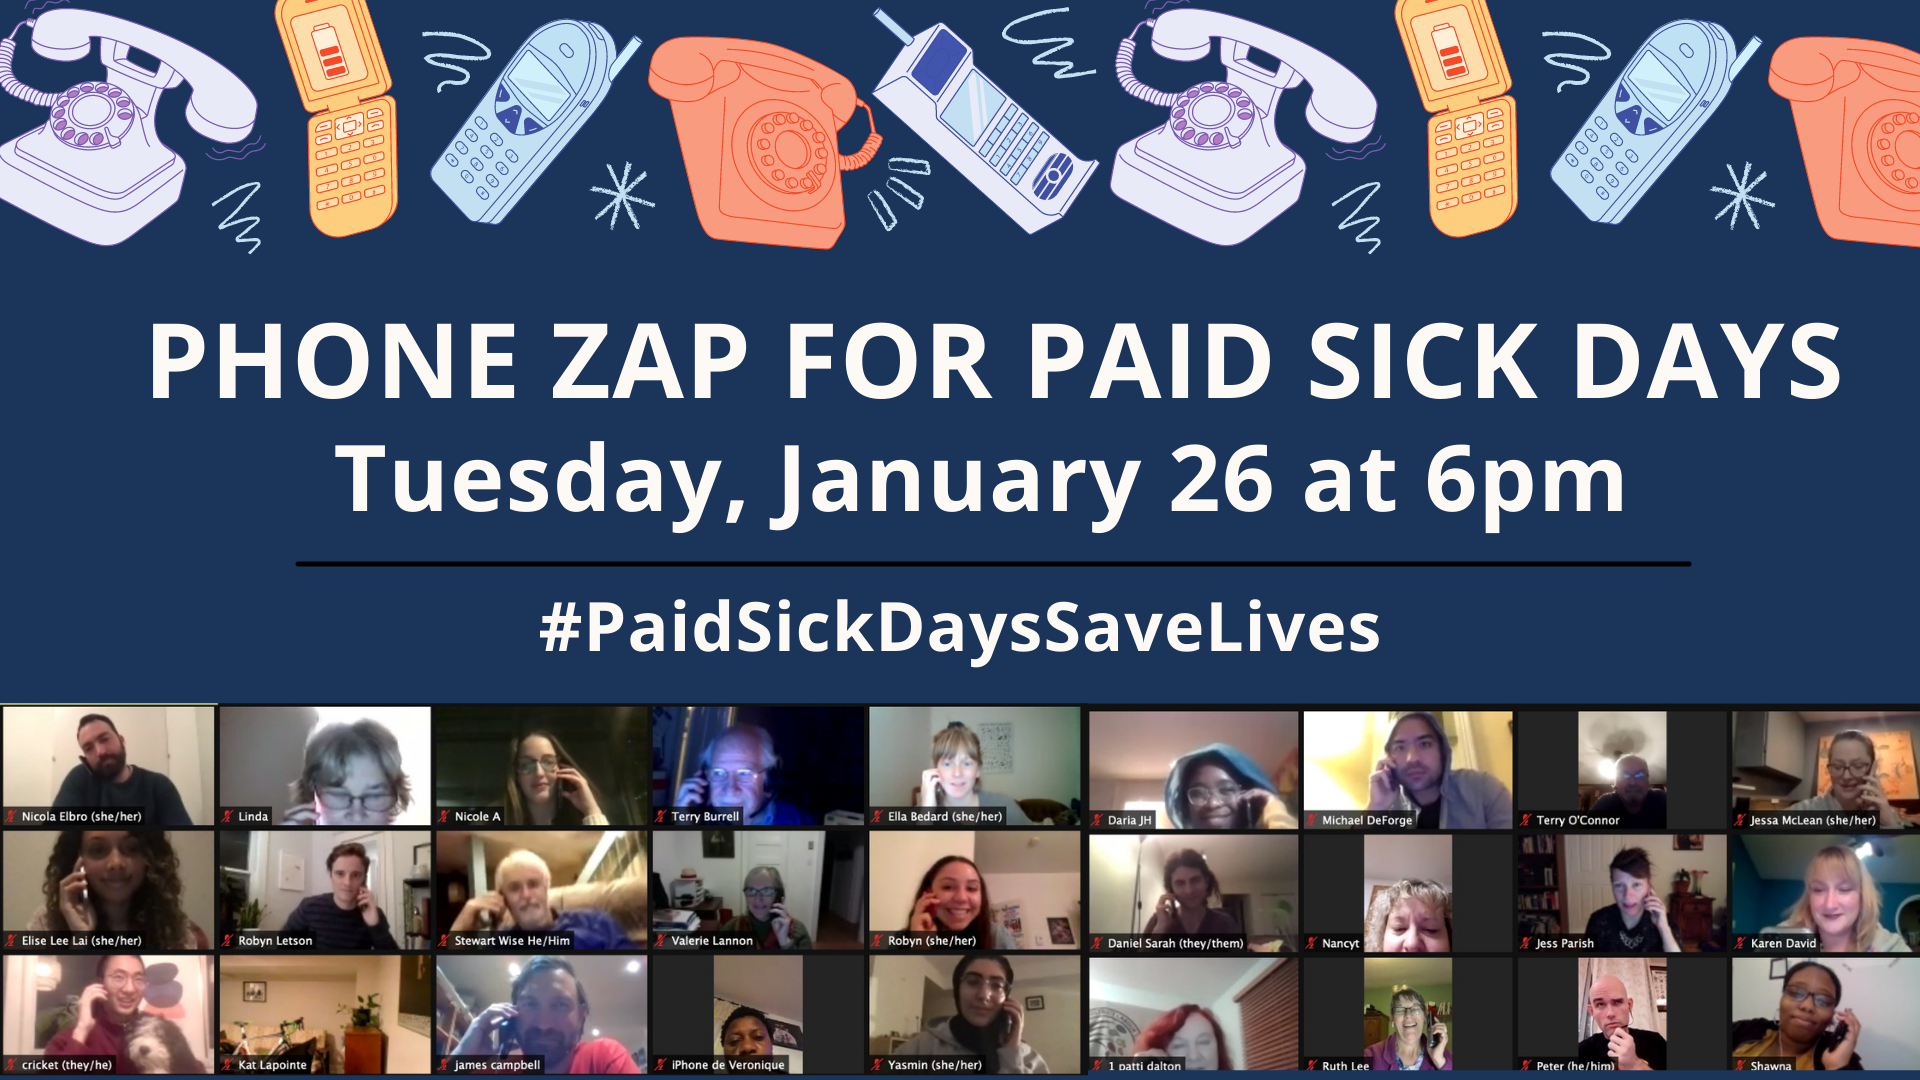 Paid Sick Days Save Lives - J26 Sharable